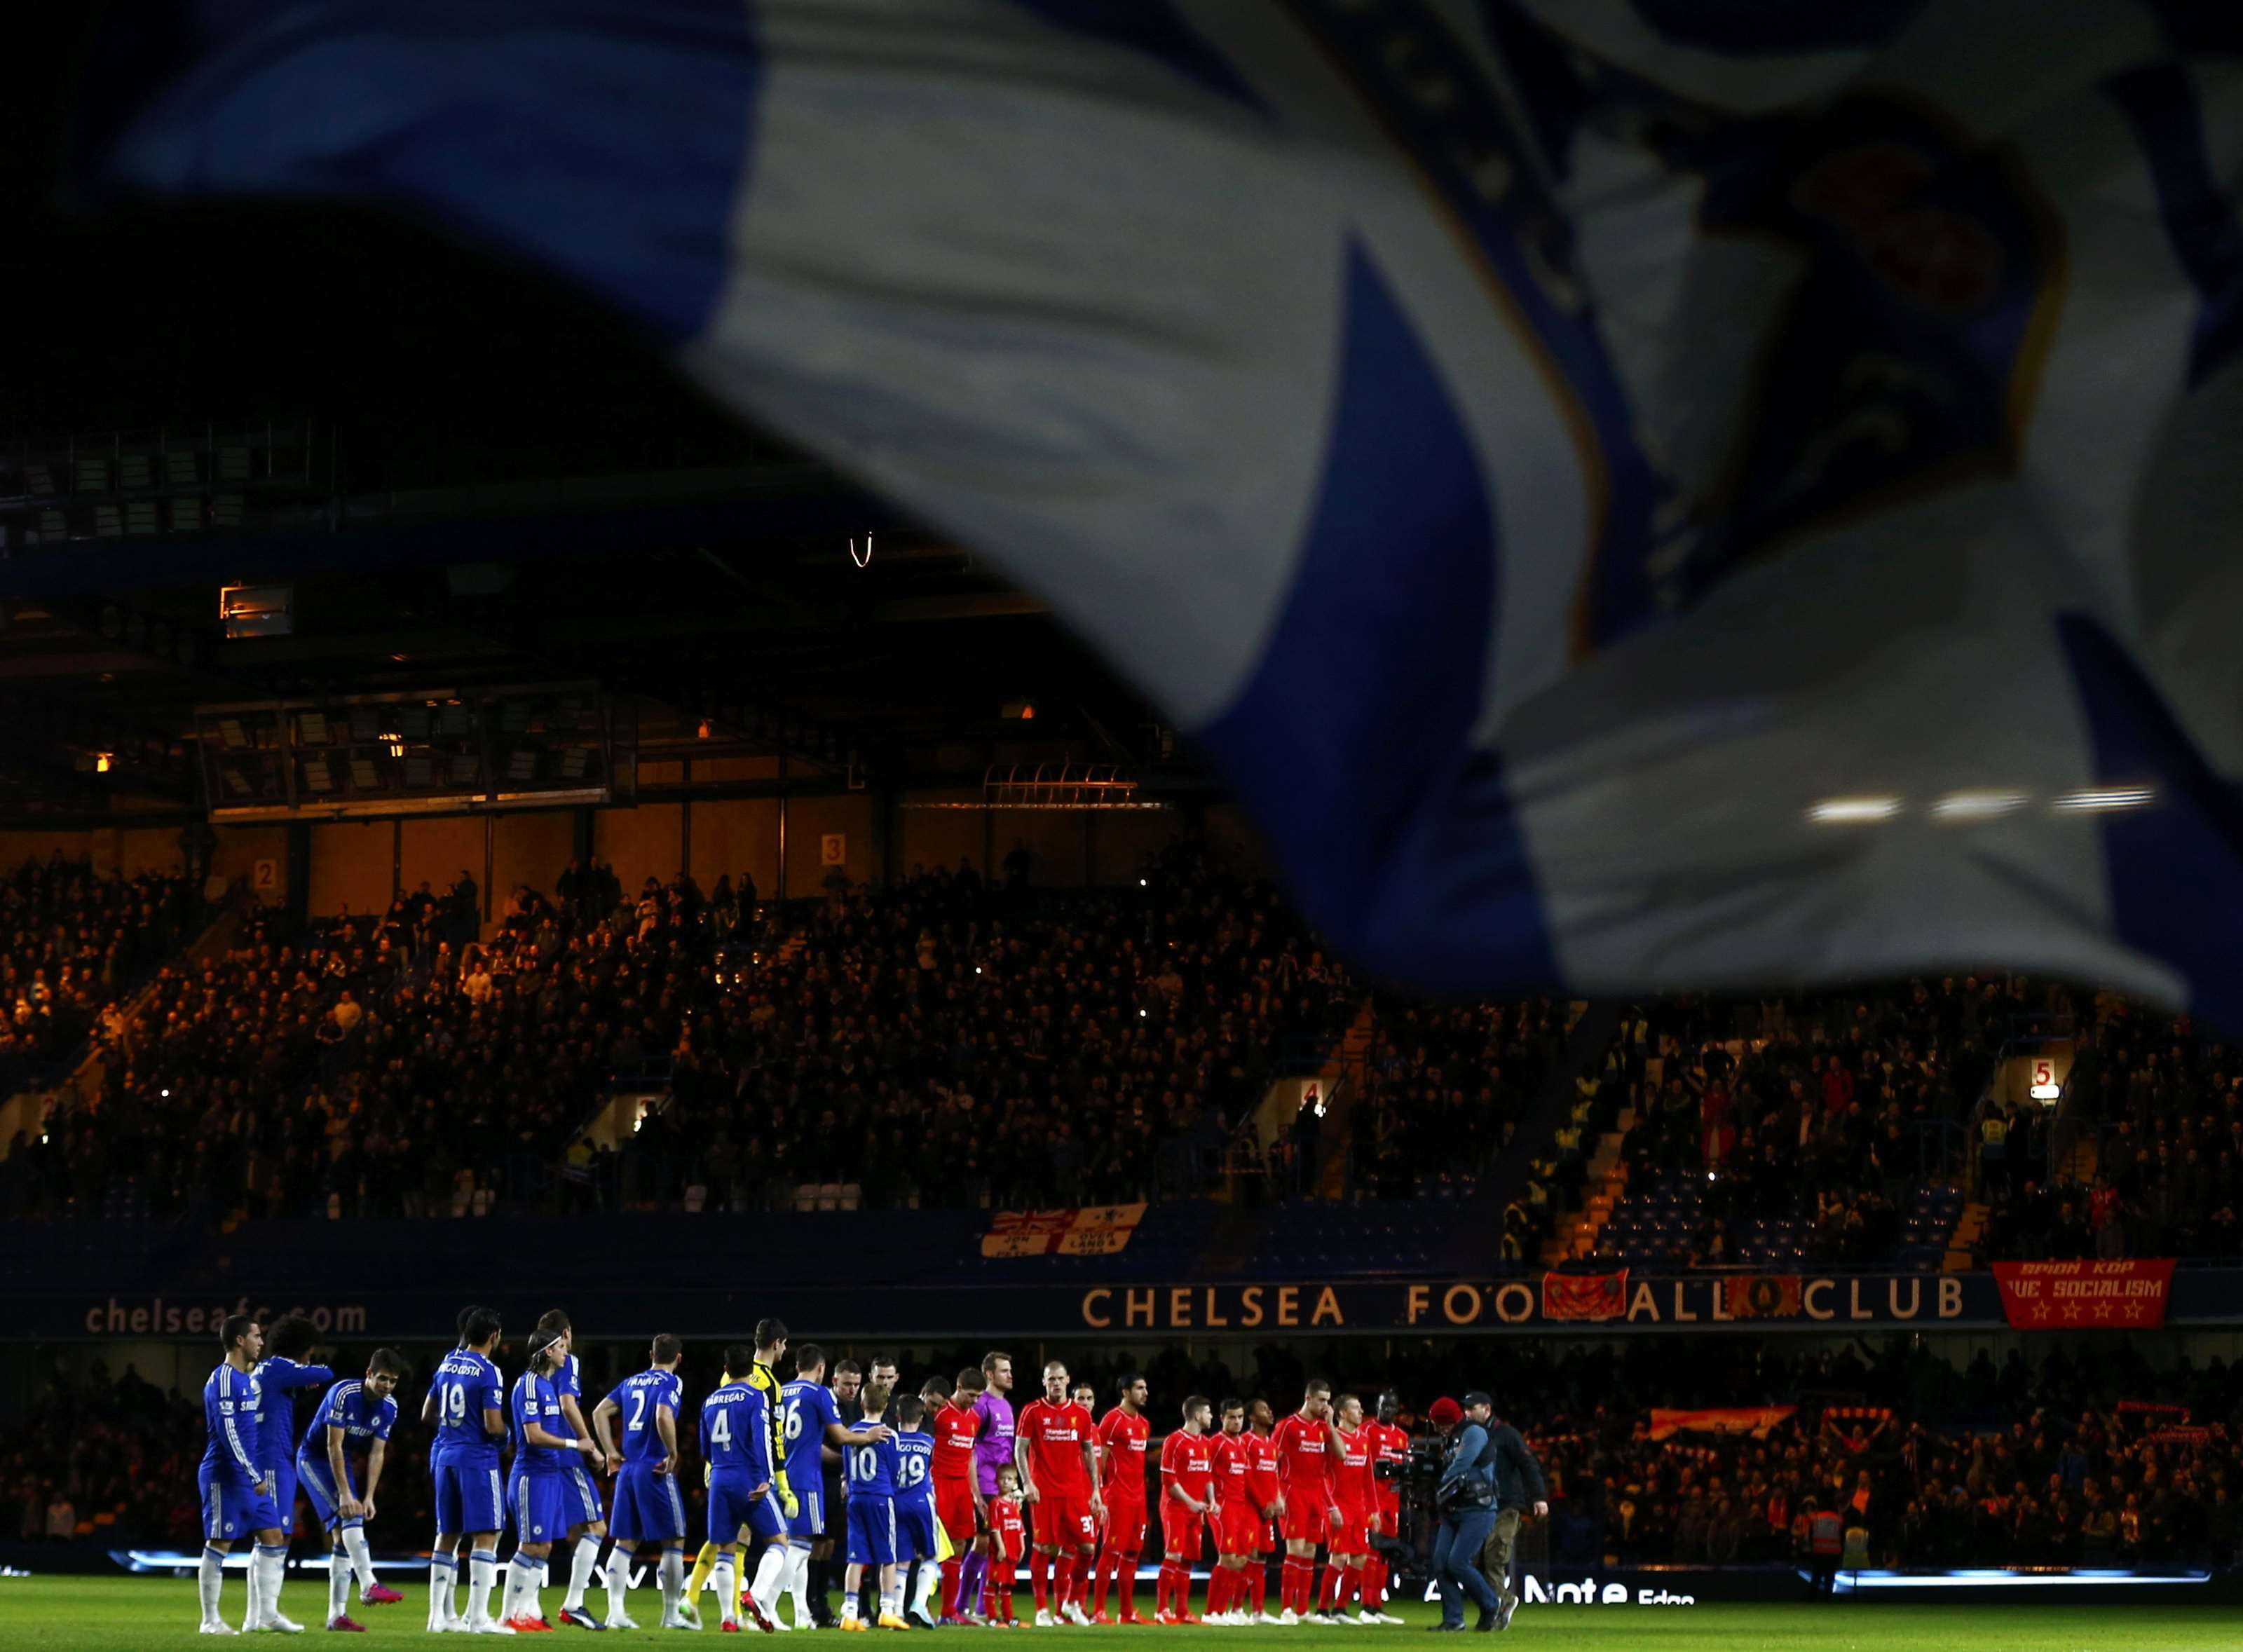 Chelsea (L) and Liverpool line up before their English League Cup semi-final second leg soccer match at Stamford Bridge in London January 27, 2015. REUTERS/Eddie Keogh (BRITAIN - Tags: SOCCER SPORT) Foto: EDDIE KEOGH/REUTERS